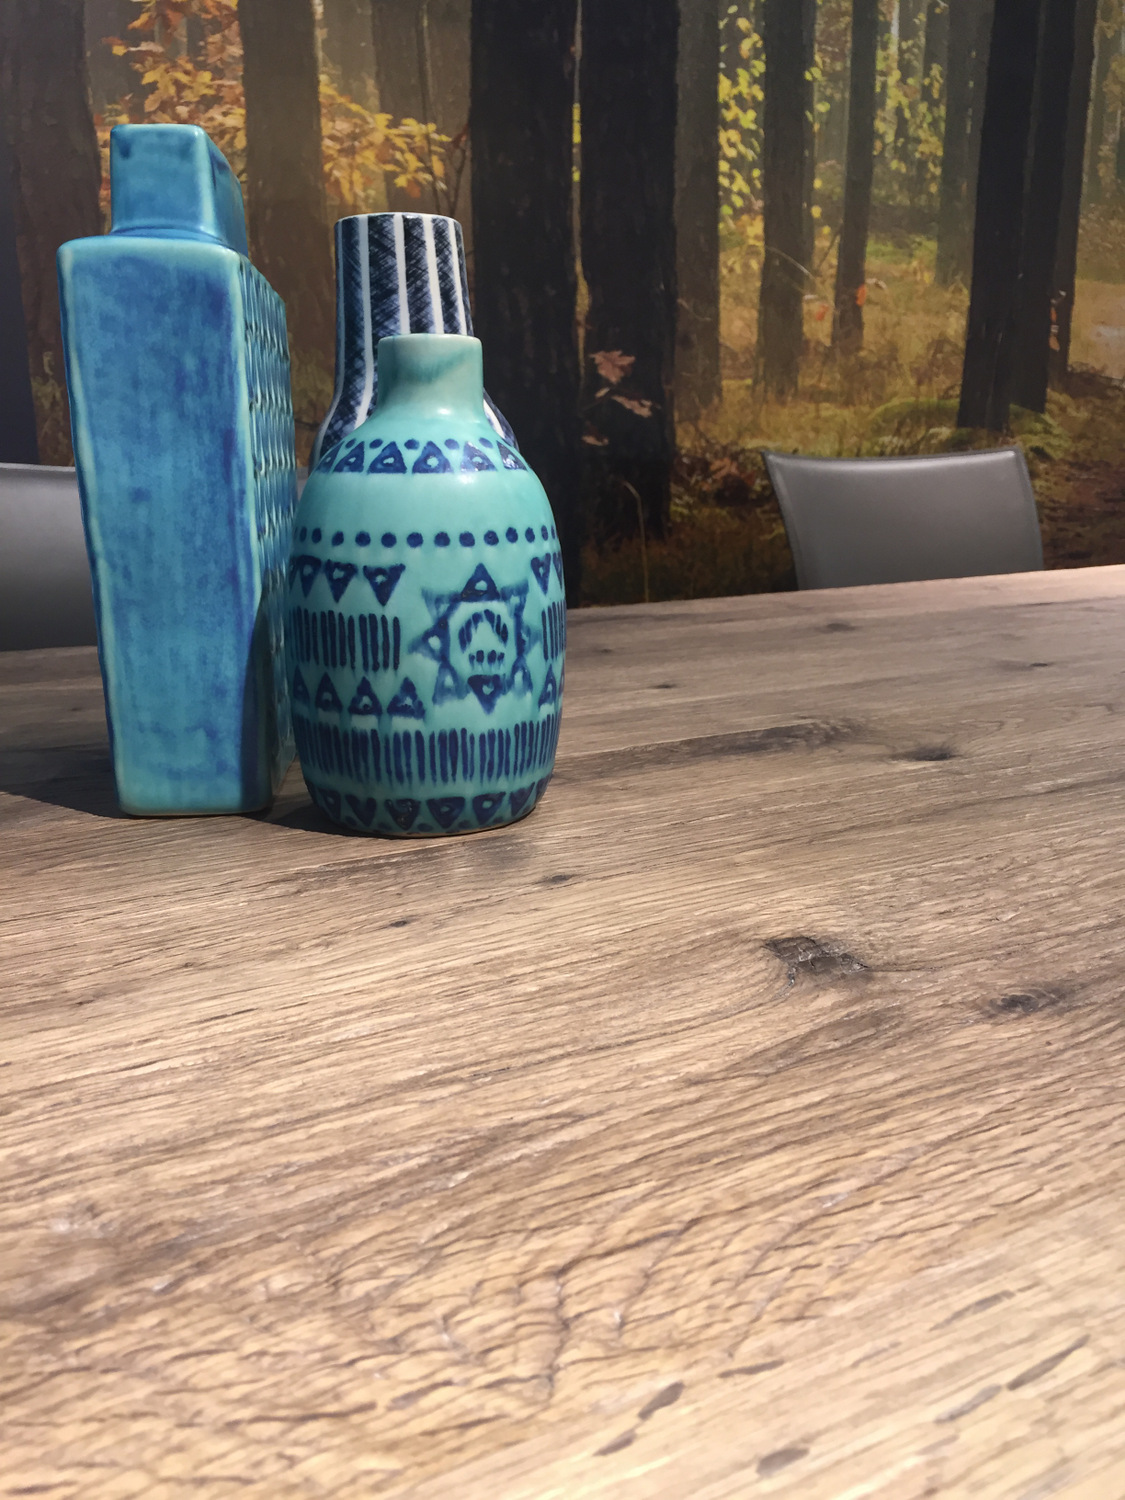 Blue vases are vibrant yet mellow